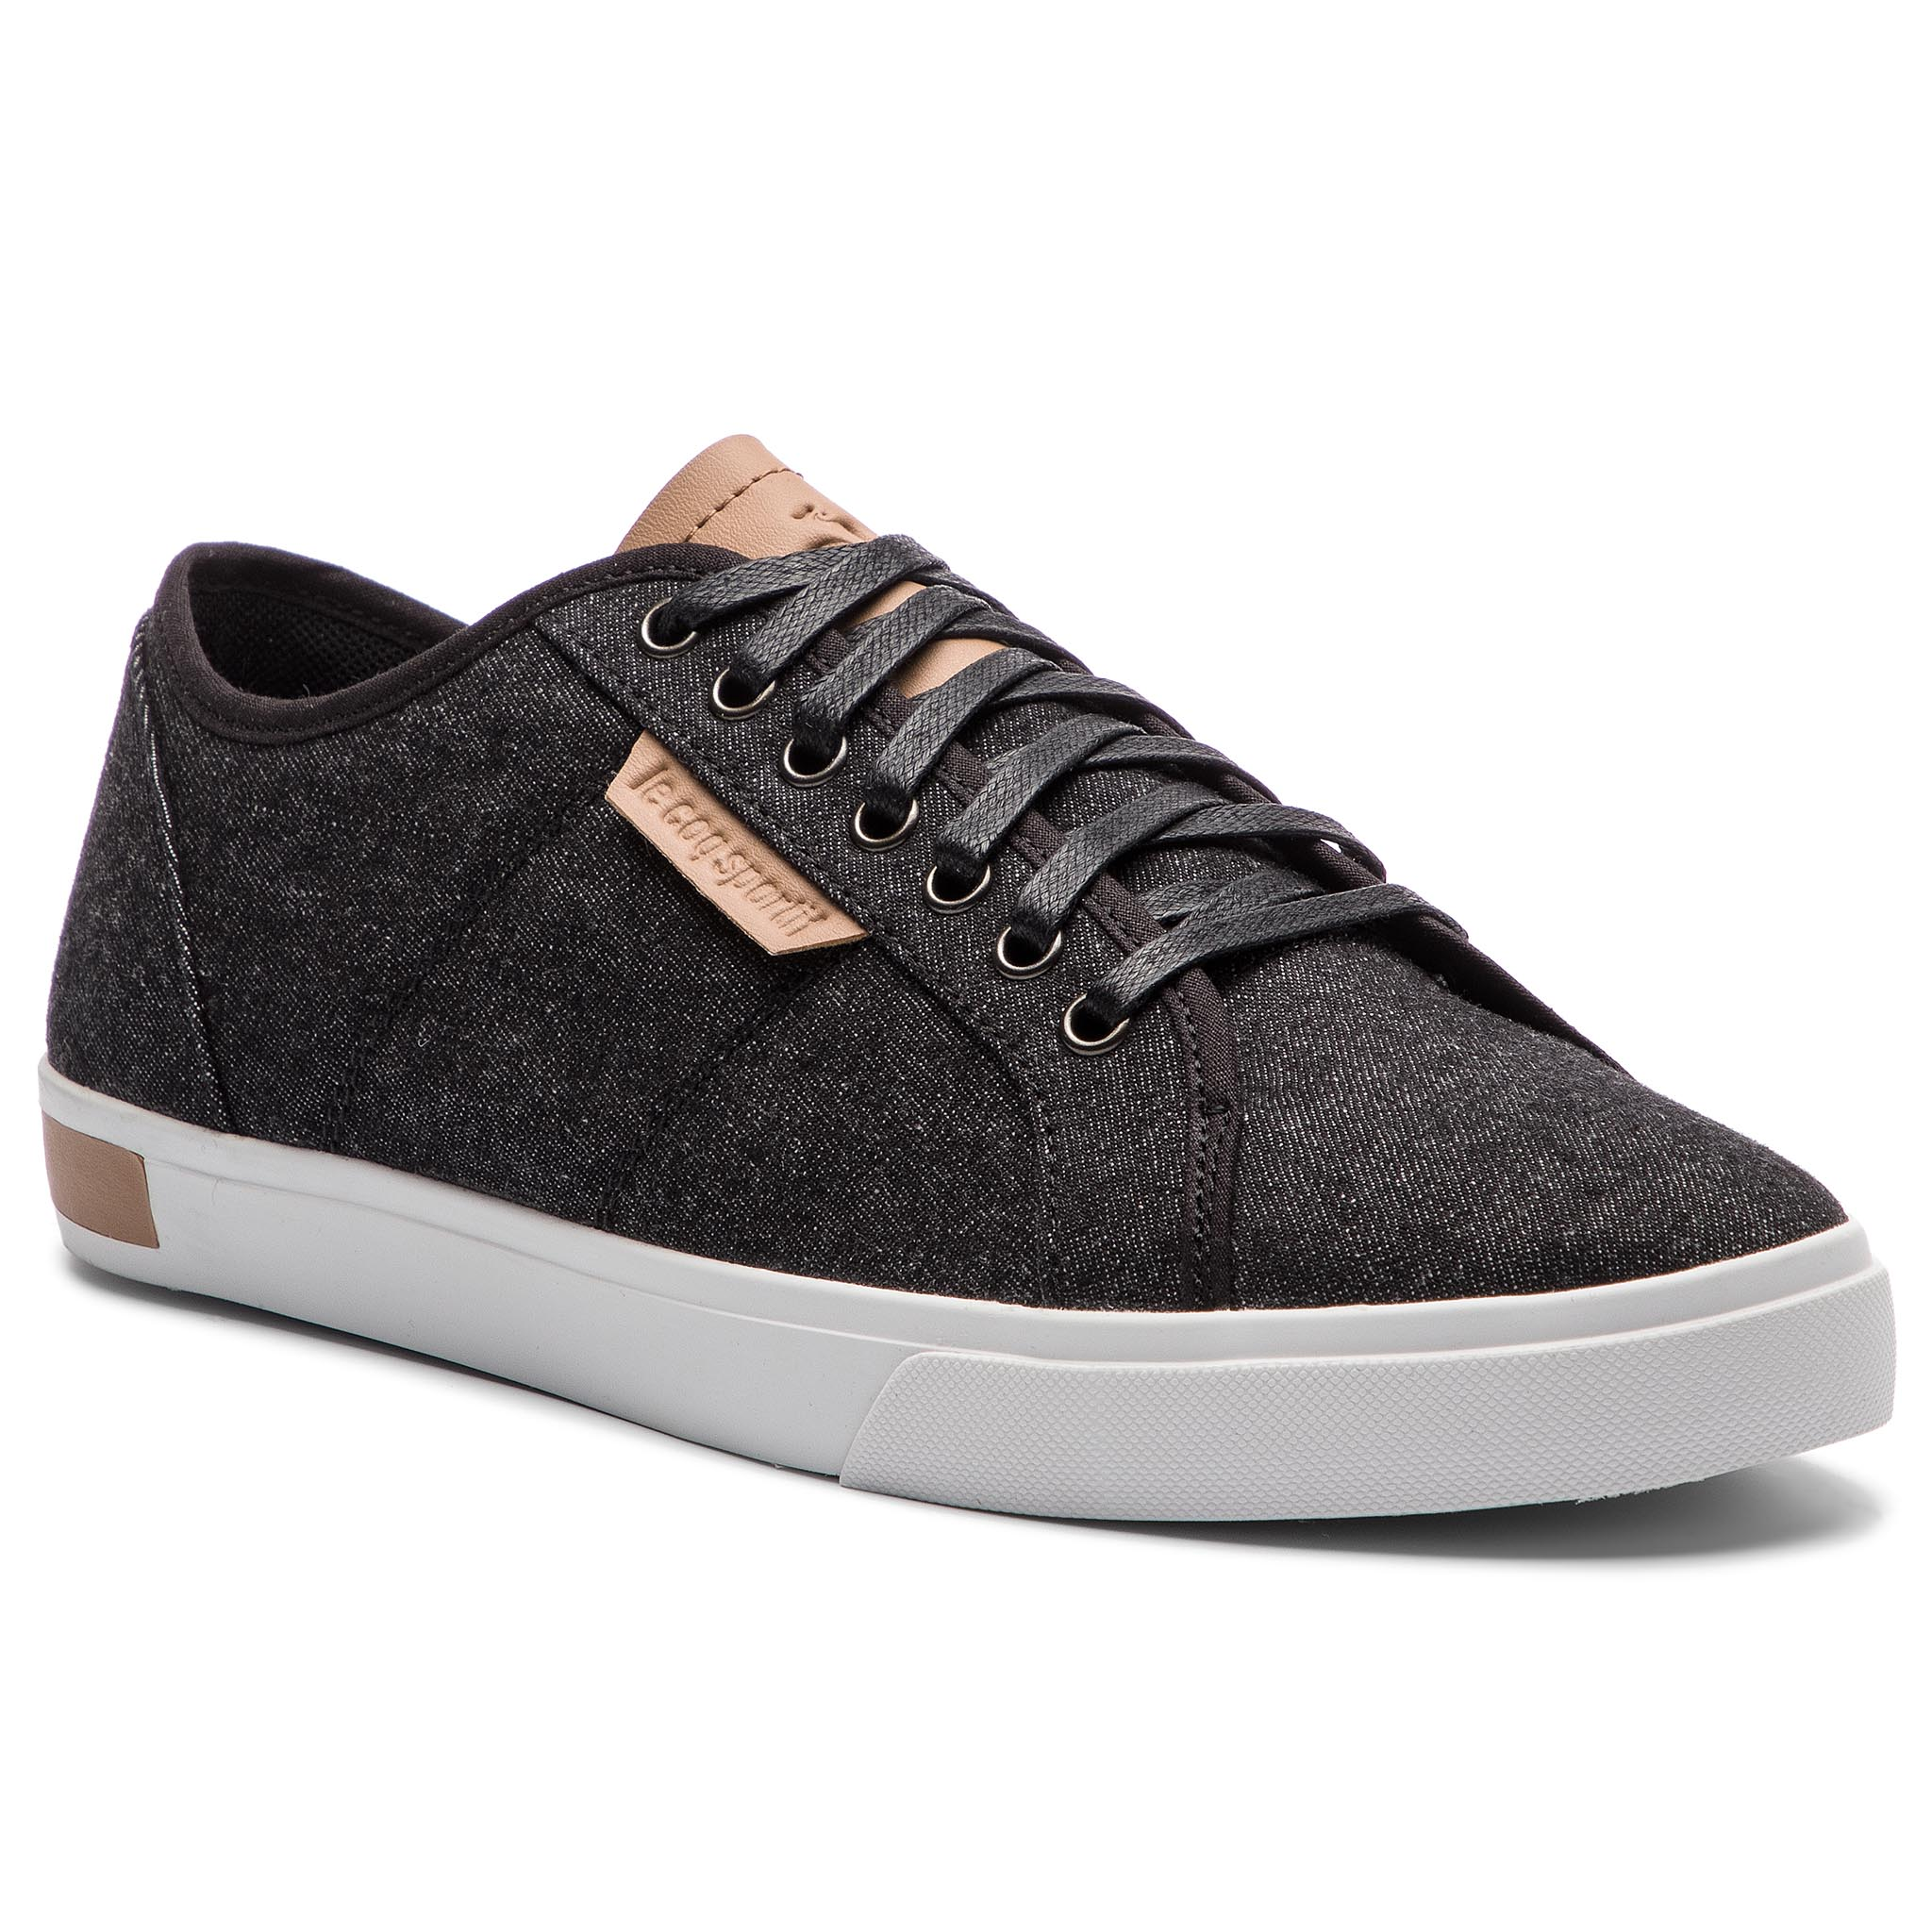 Sneakers LE COQ SPORTIF - Verdon Craft 1820102 Black/Brown Sugar